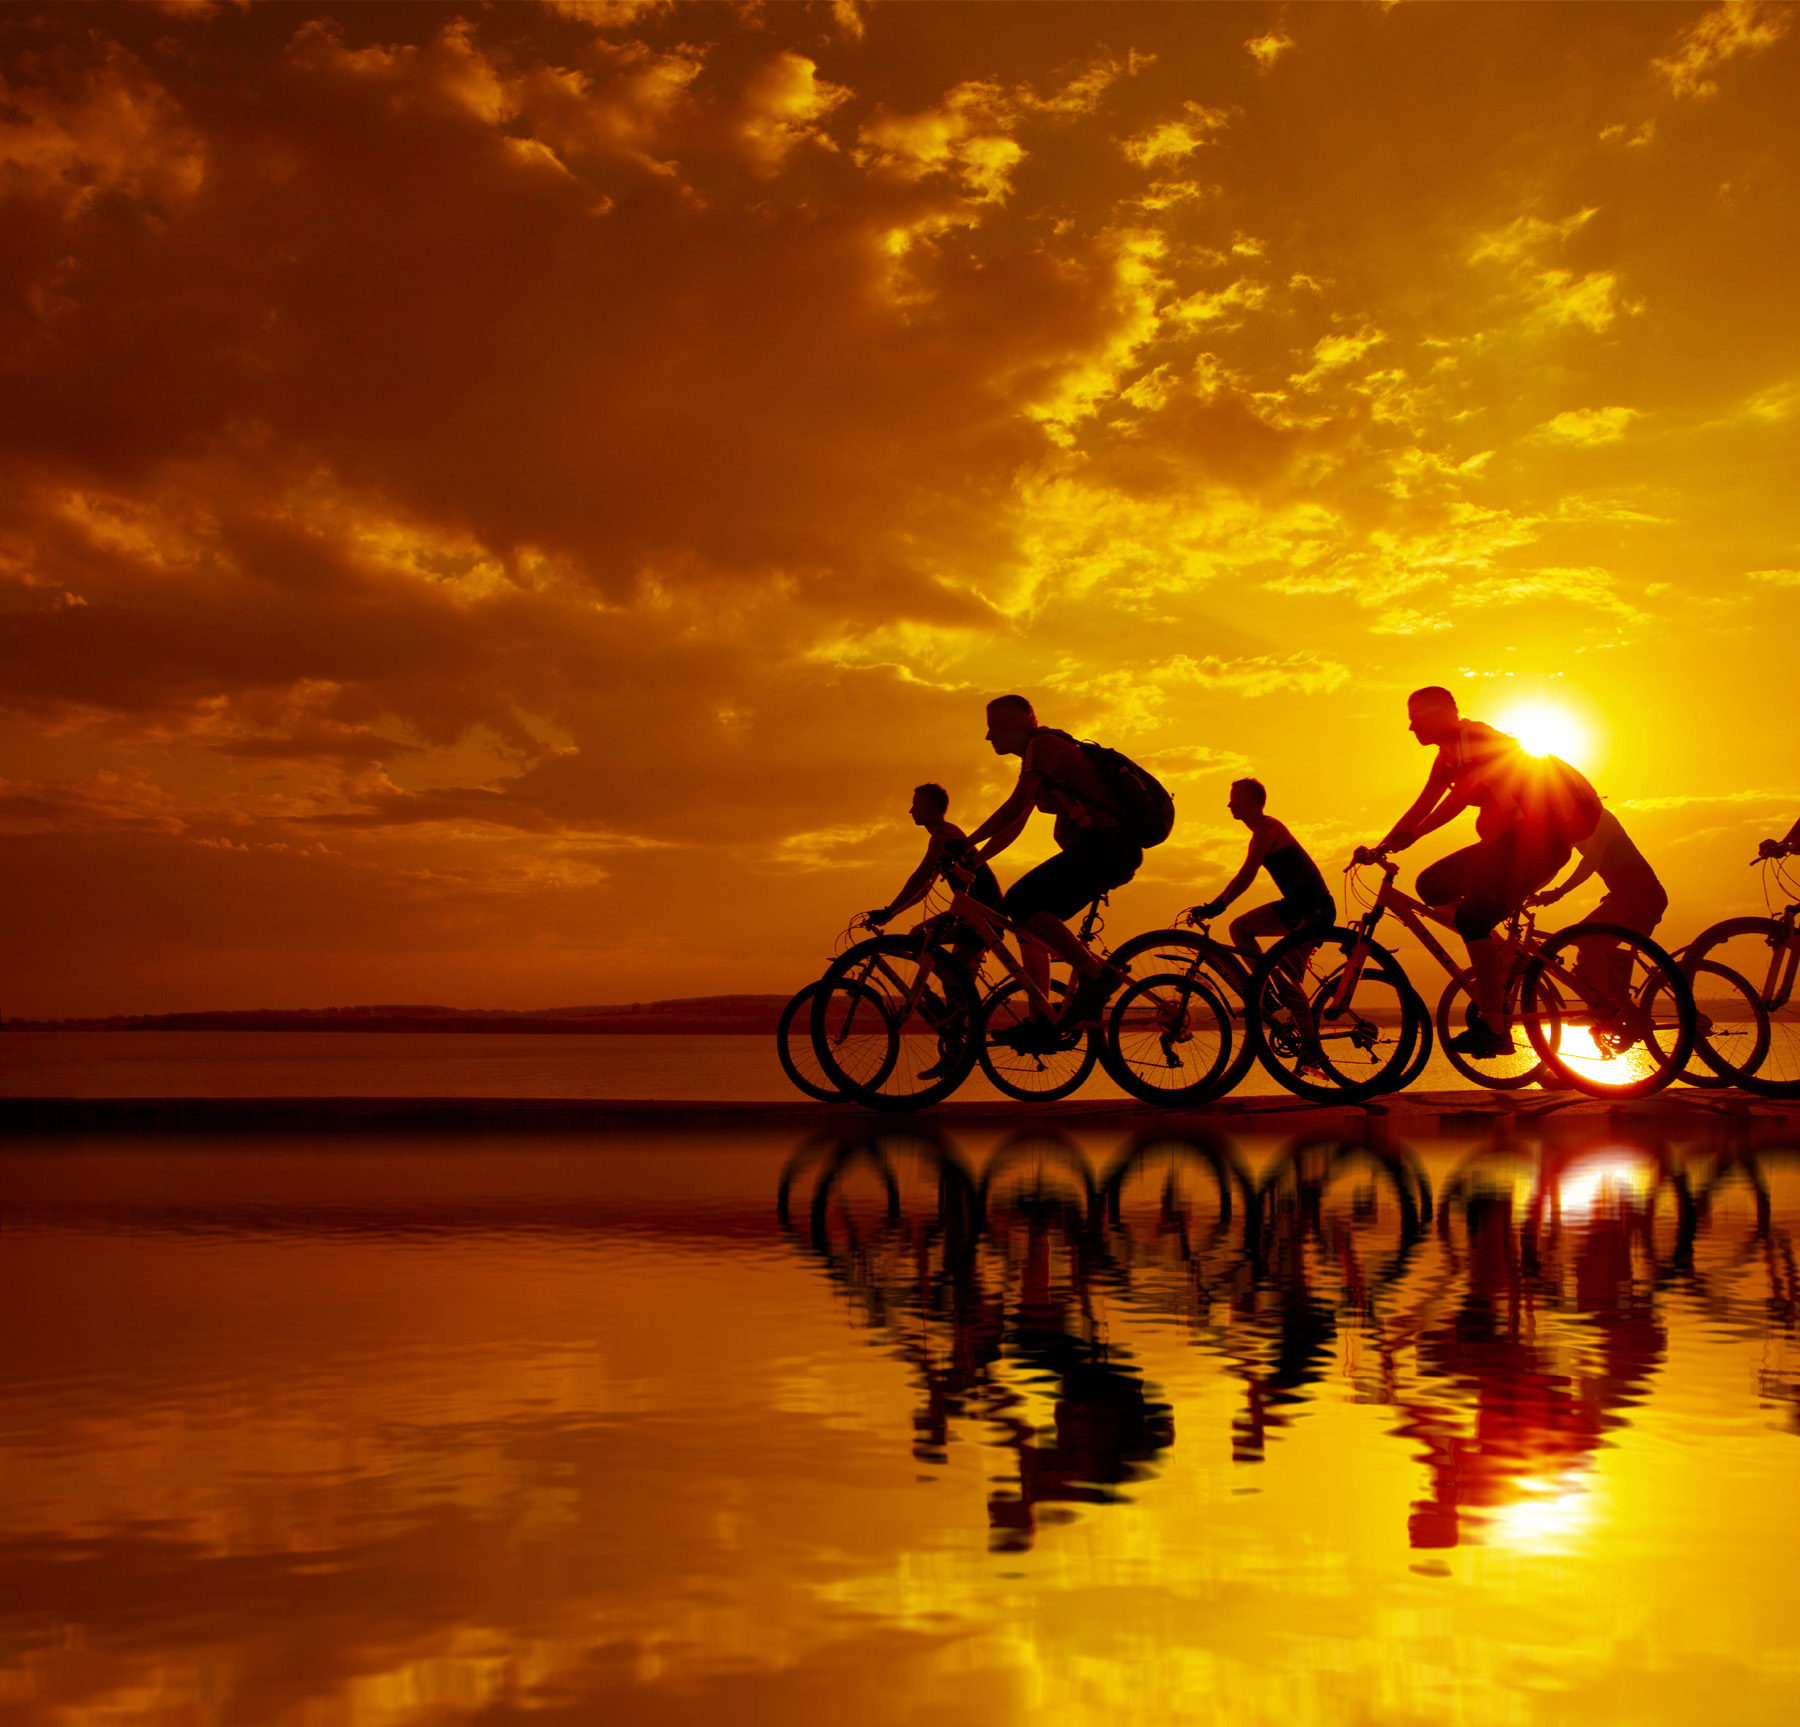 Sunrise cycling team 51579